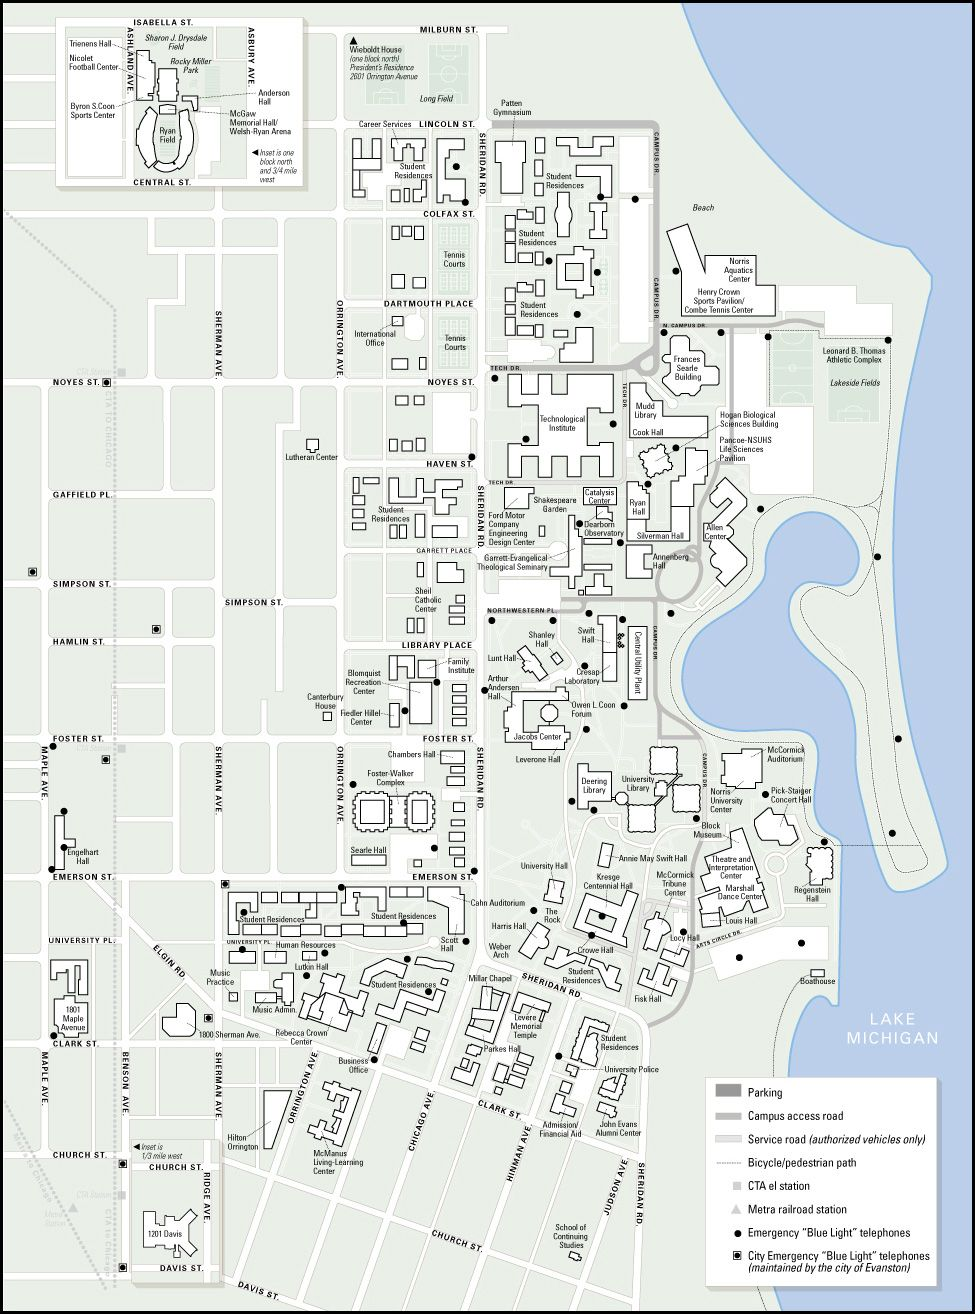 Northwestern University Evanston Campus Map.Campus Map For Northwestern University Evanston Ar Map